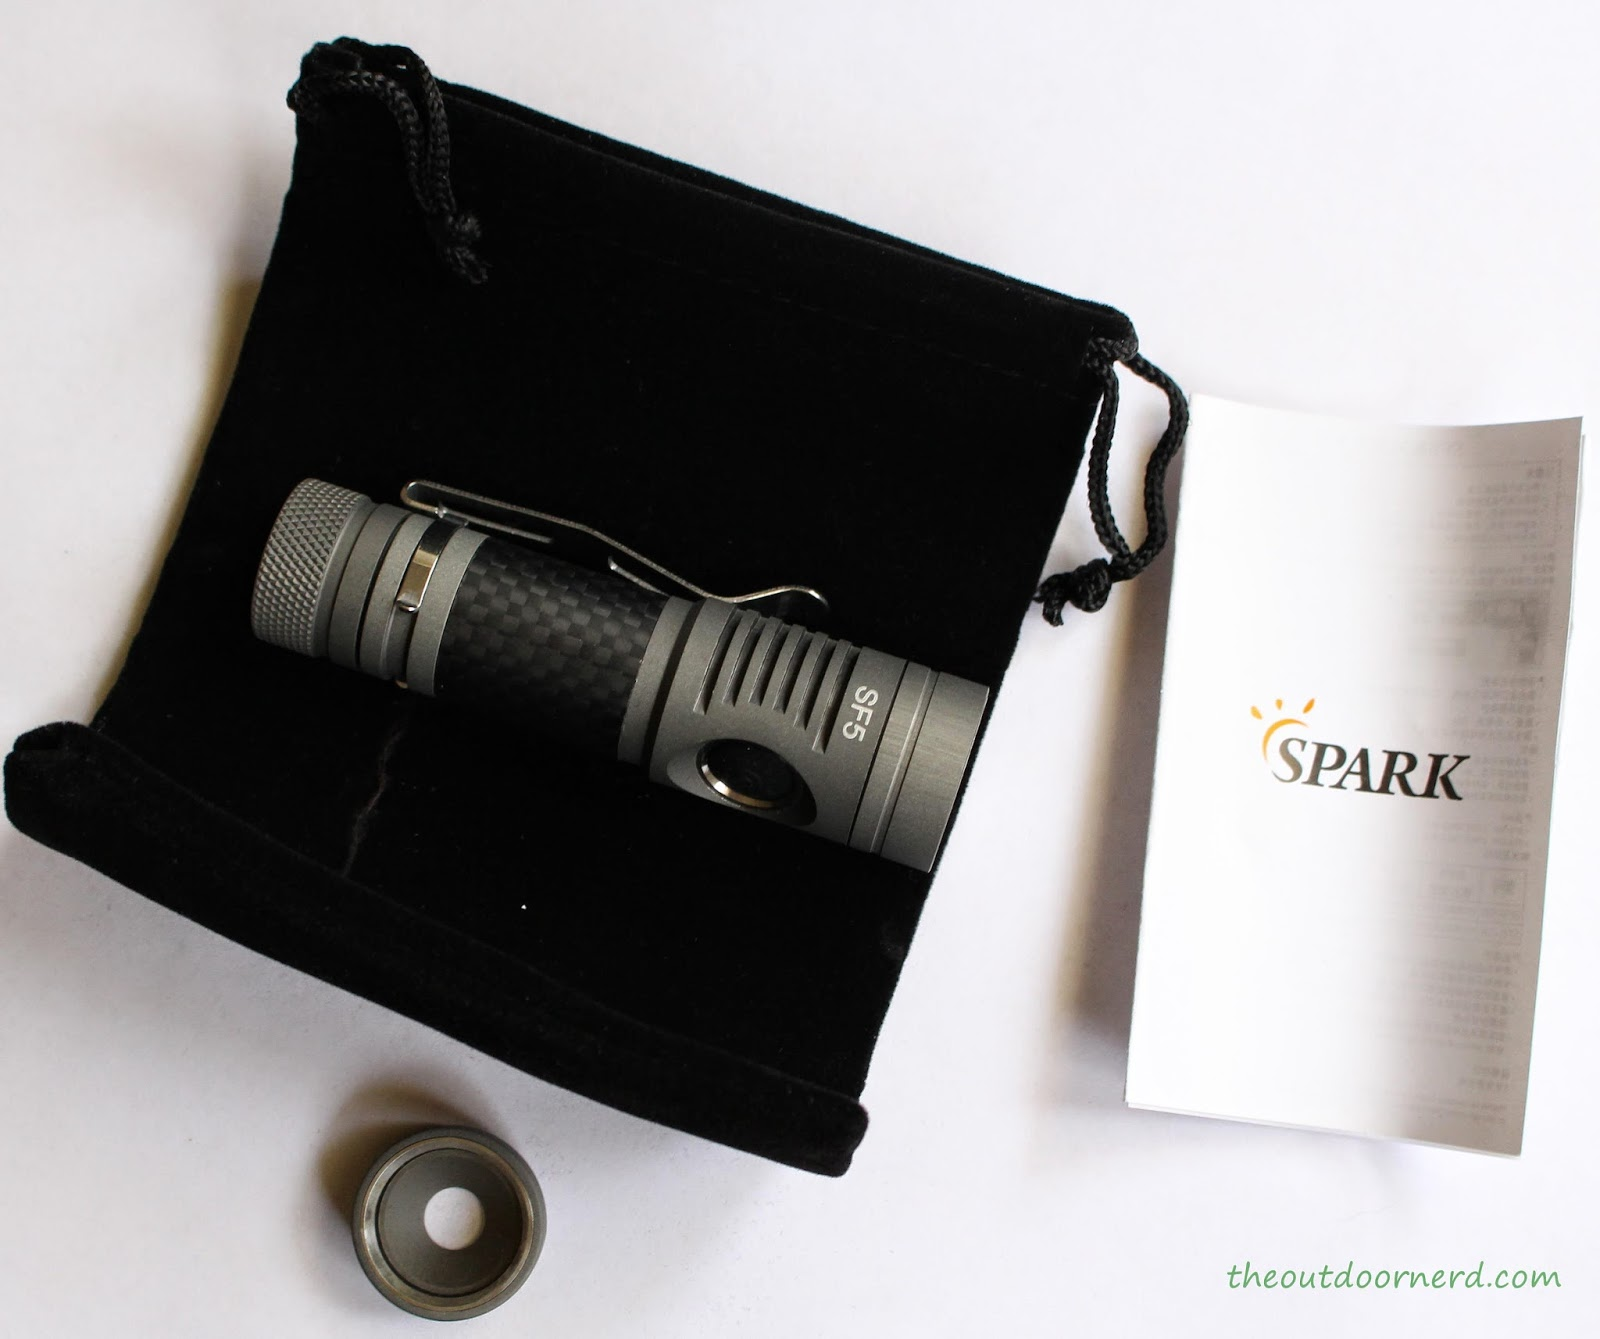 Spark SF5 1xAA Flashlight: Unboxed 1